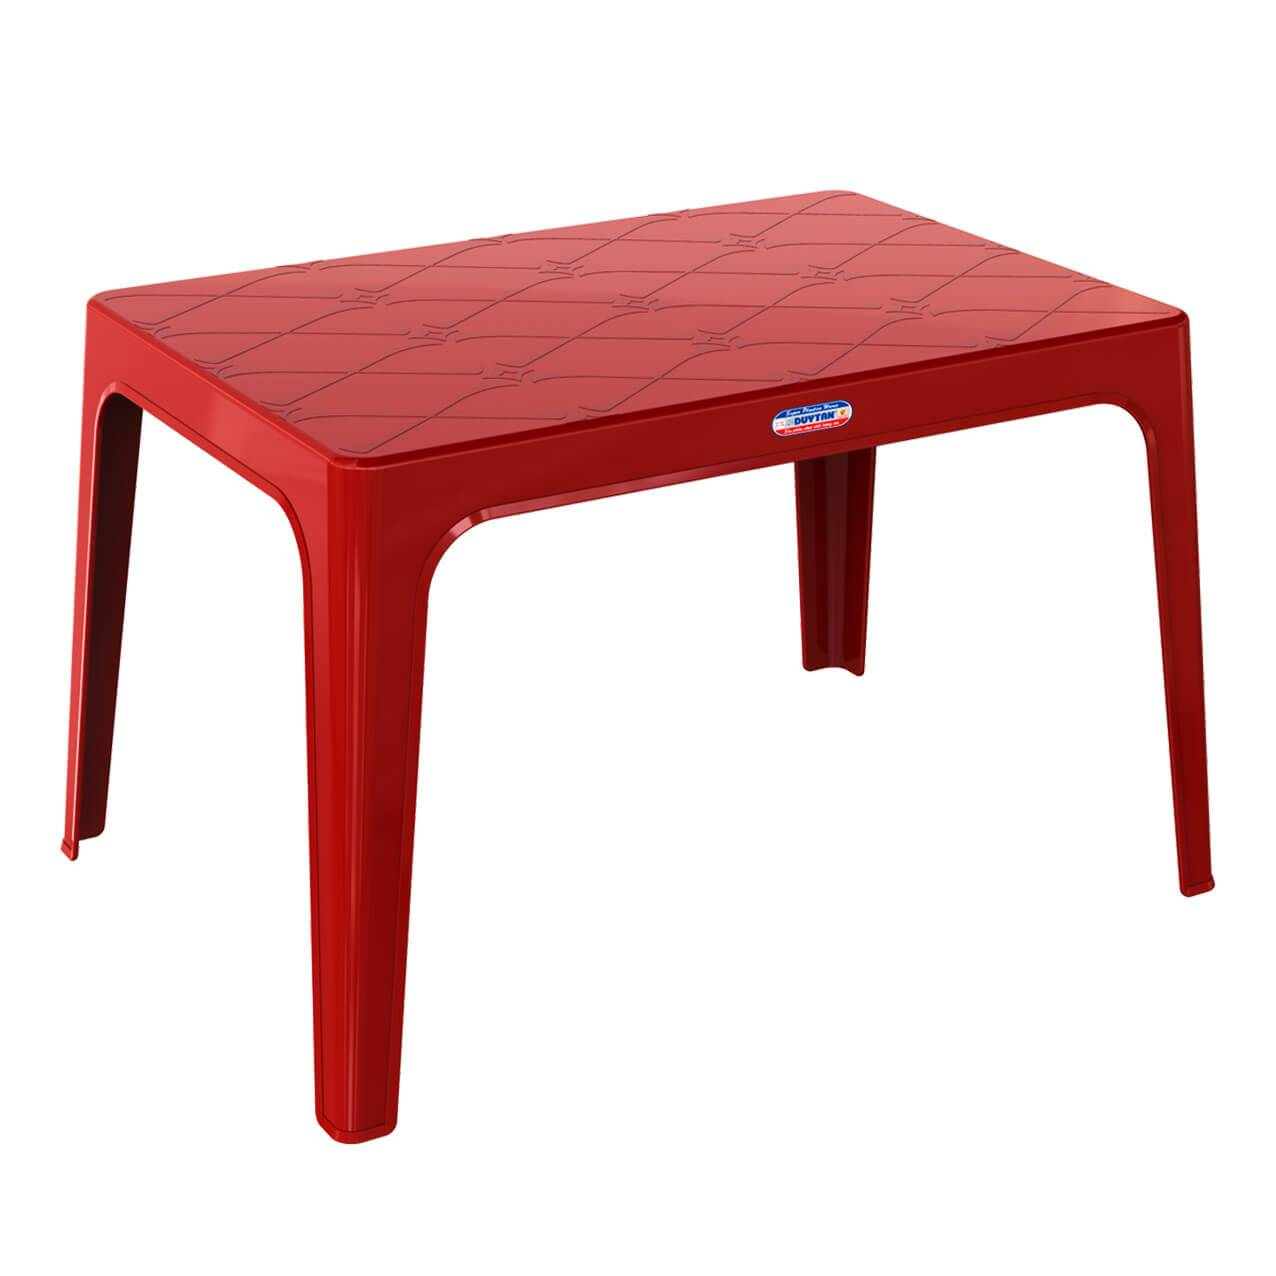 Plastic table-Duy Tan plastics vietnam